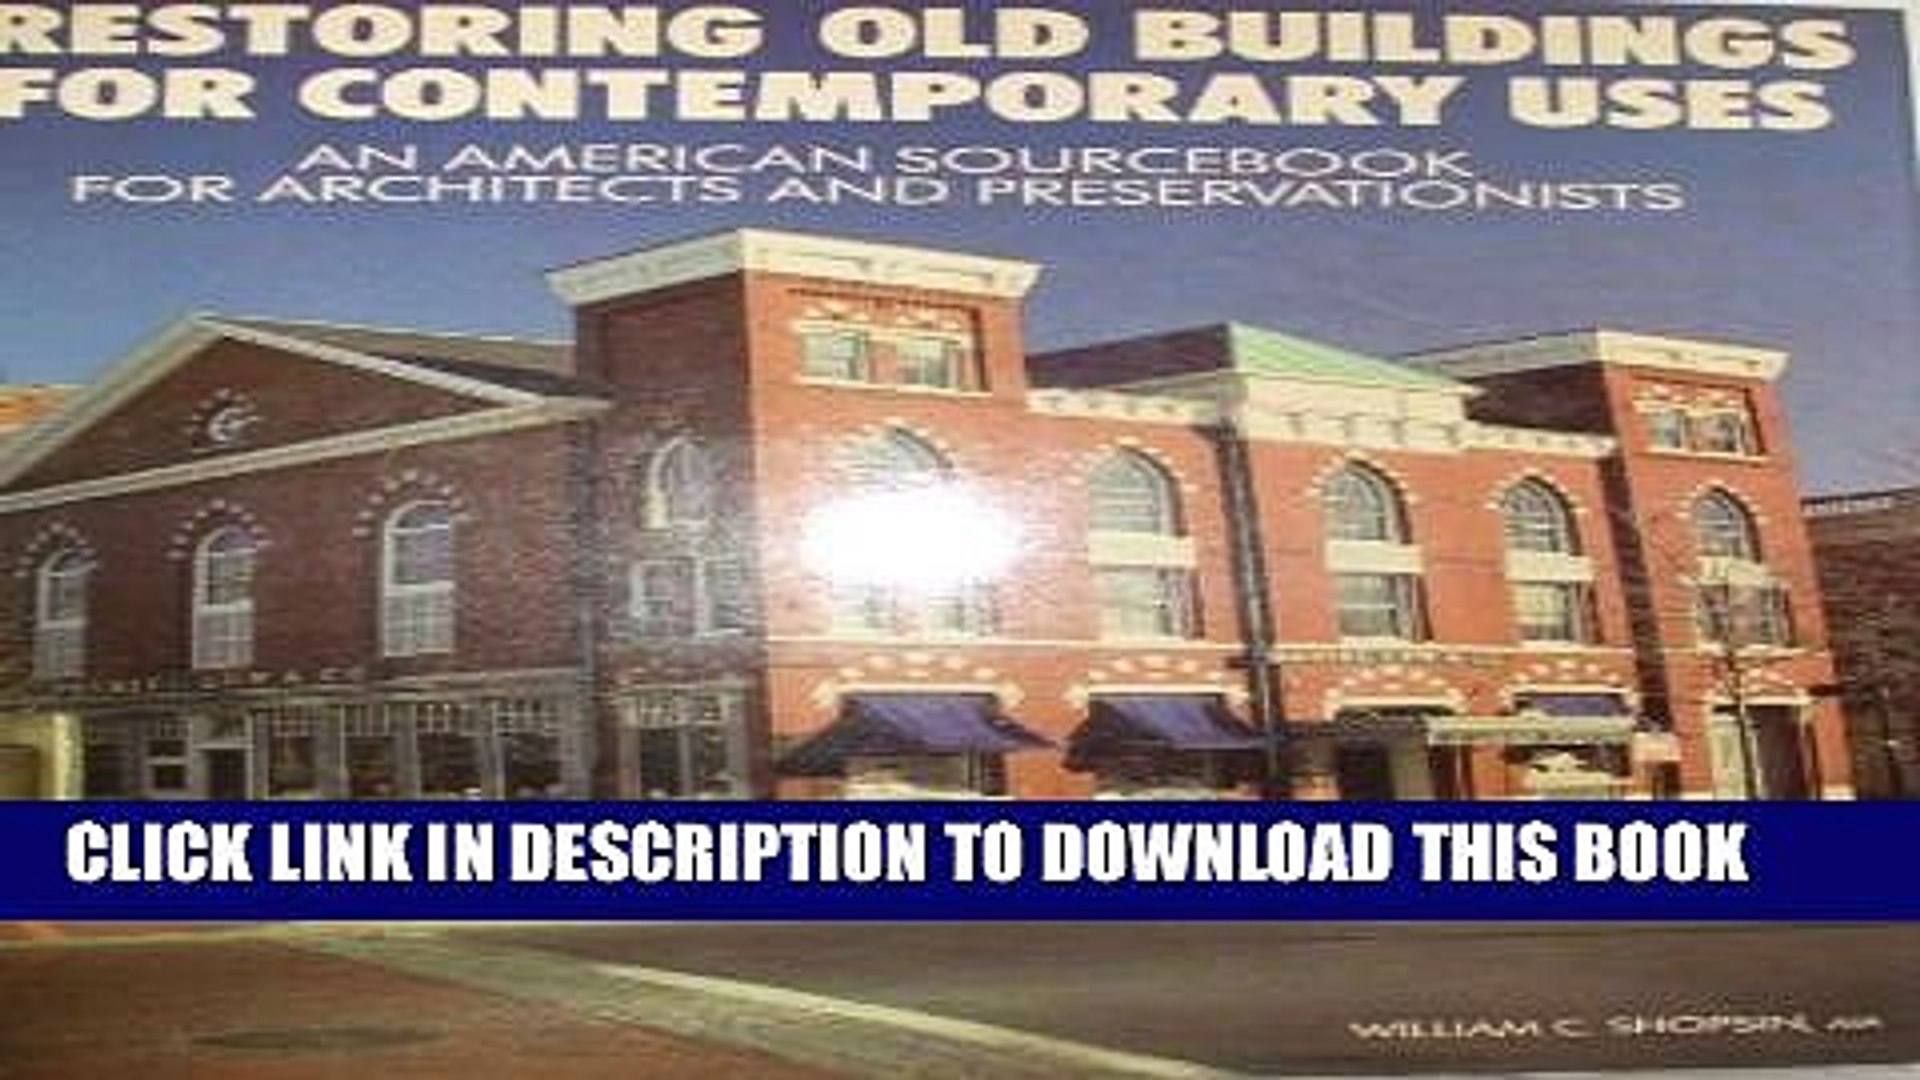 [PDF] Restoring Old Buildings for Contemporary Uses: An American Sourcebook for Architects and